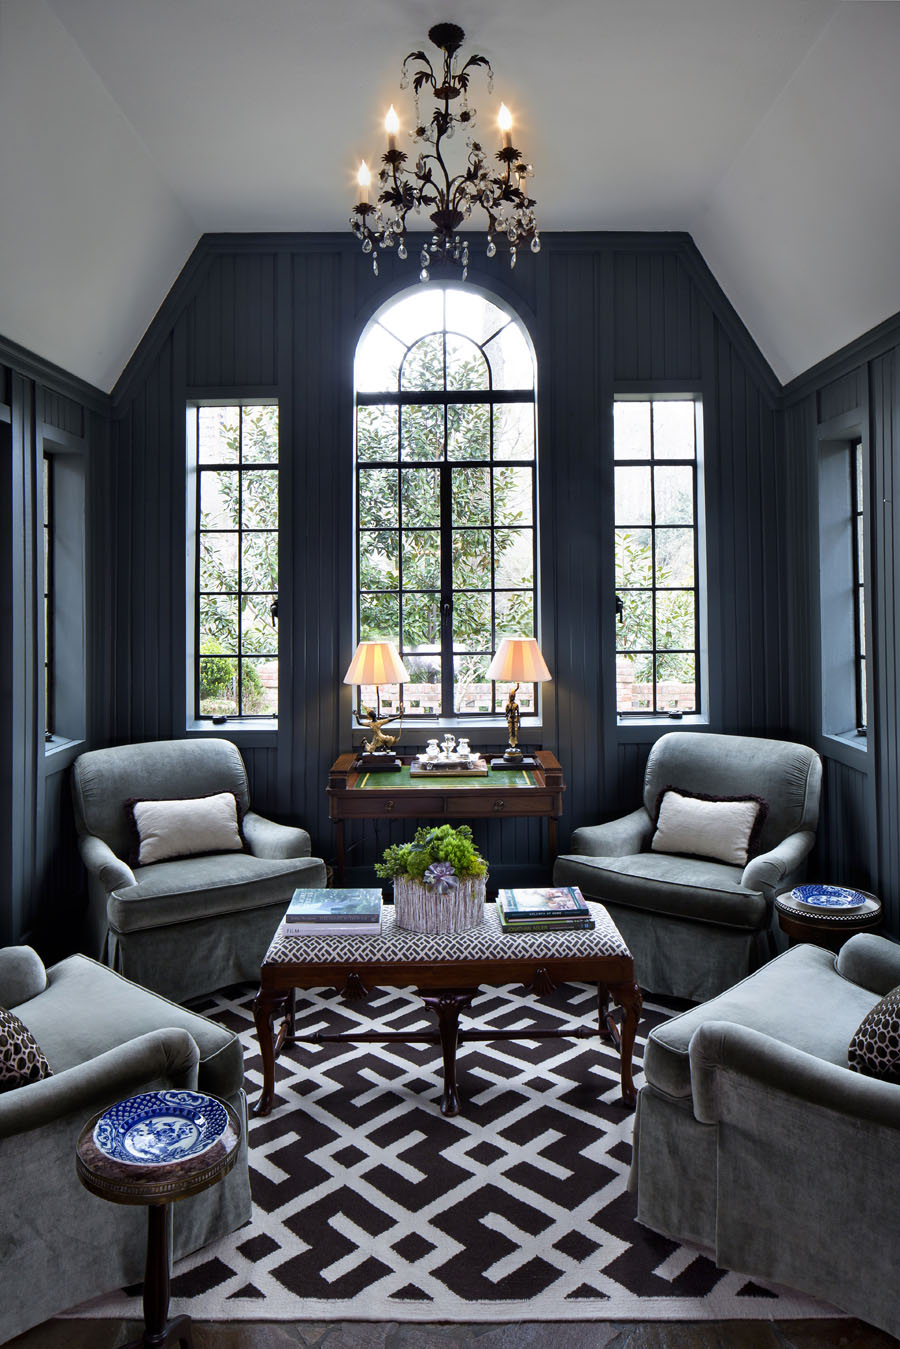 Jane Goetz Interior Design